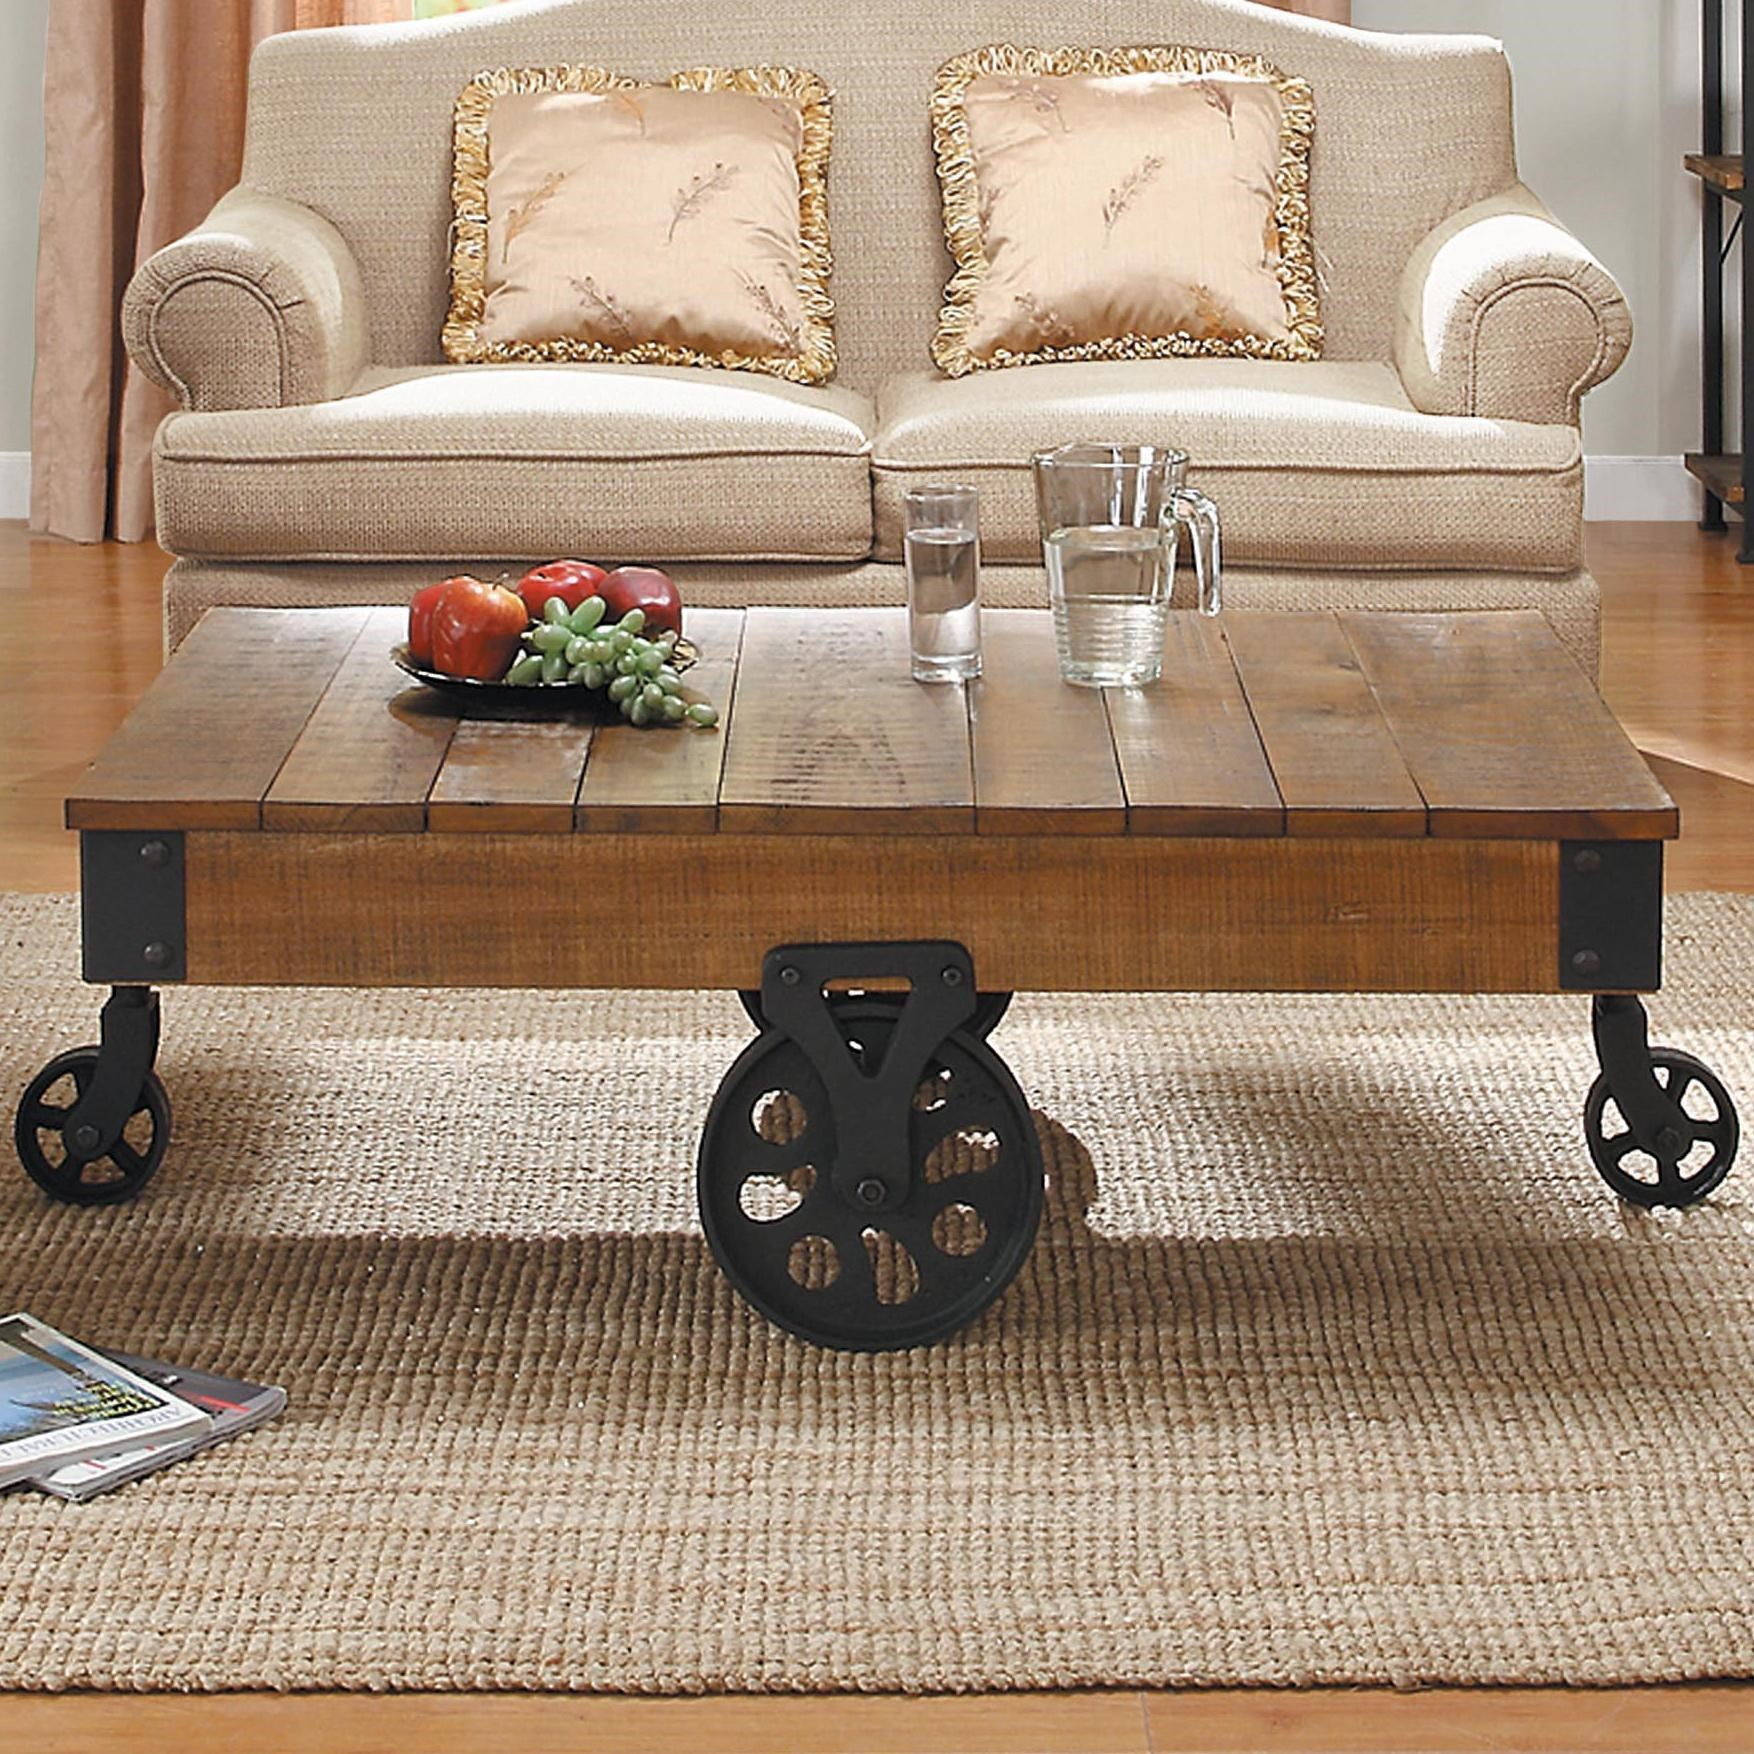 Homelegance Factory Collection Cocktail Table With Wheels   Darvin  Furniture   Cocktail Or Coffee Table